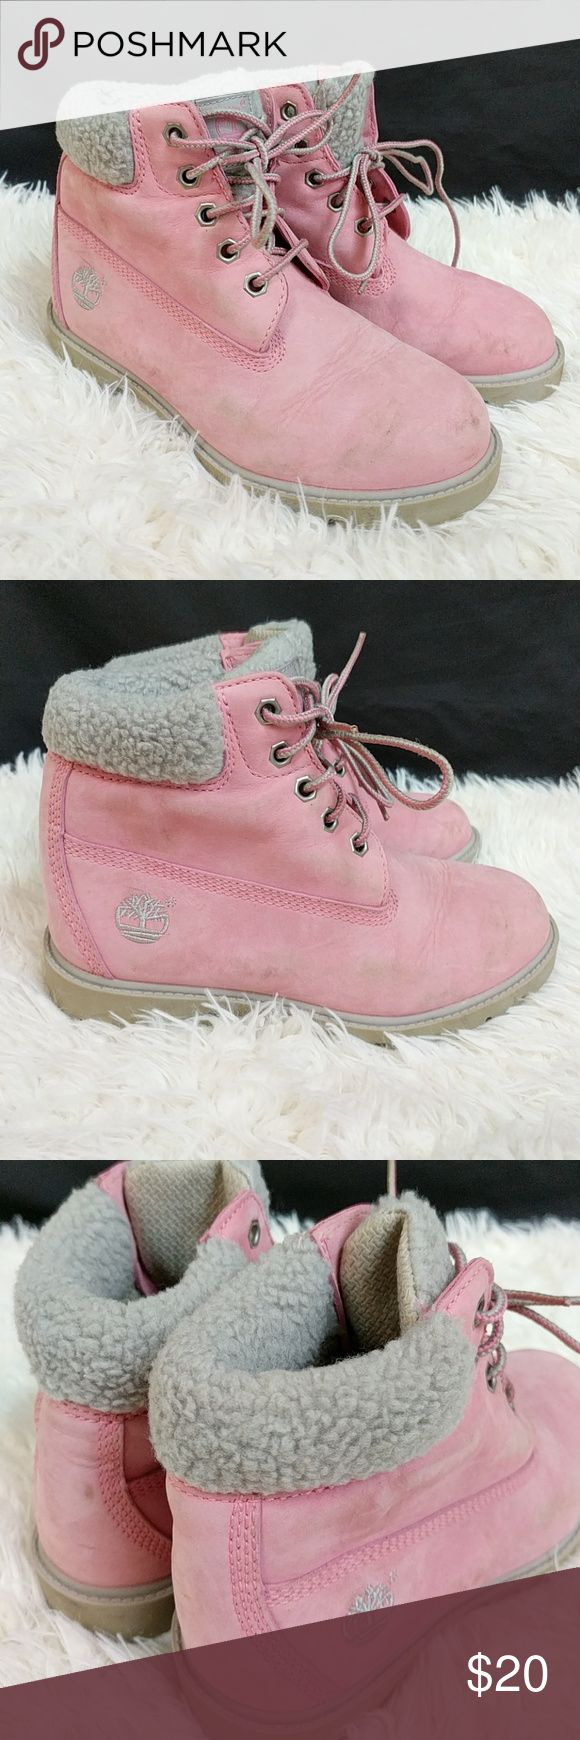 Girls Timberland Boots Great Condition Girls Timberland Fir Collared Boots Size 1.5. Pink & Grey. Timberland Shoes